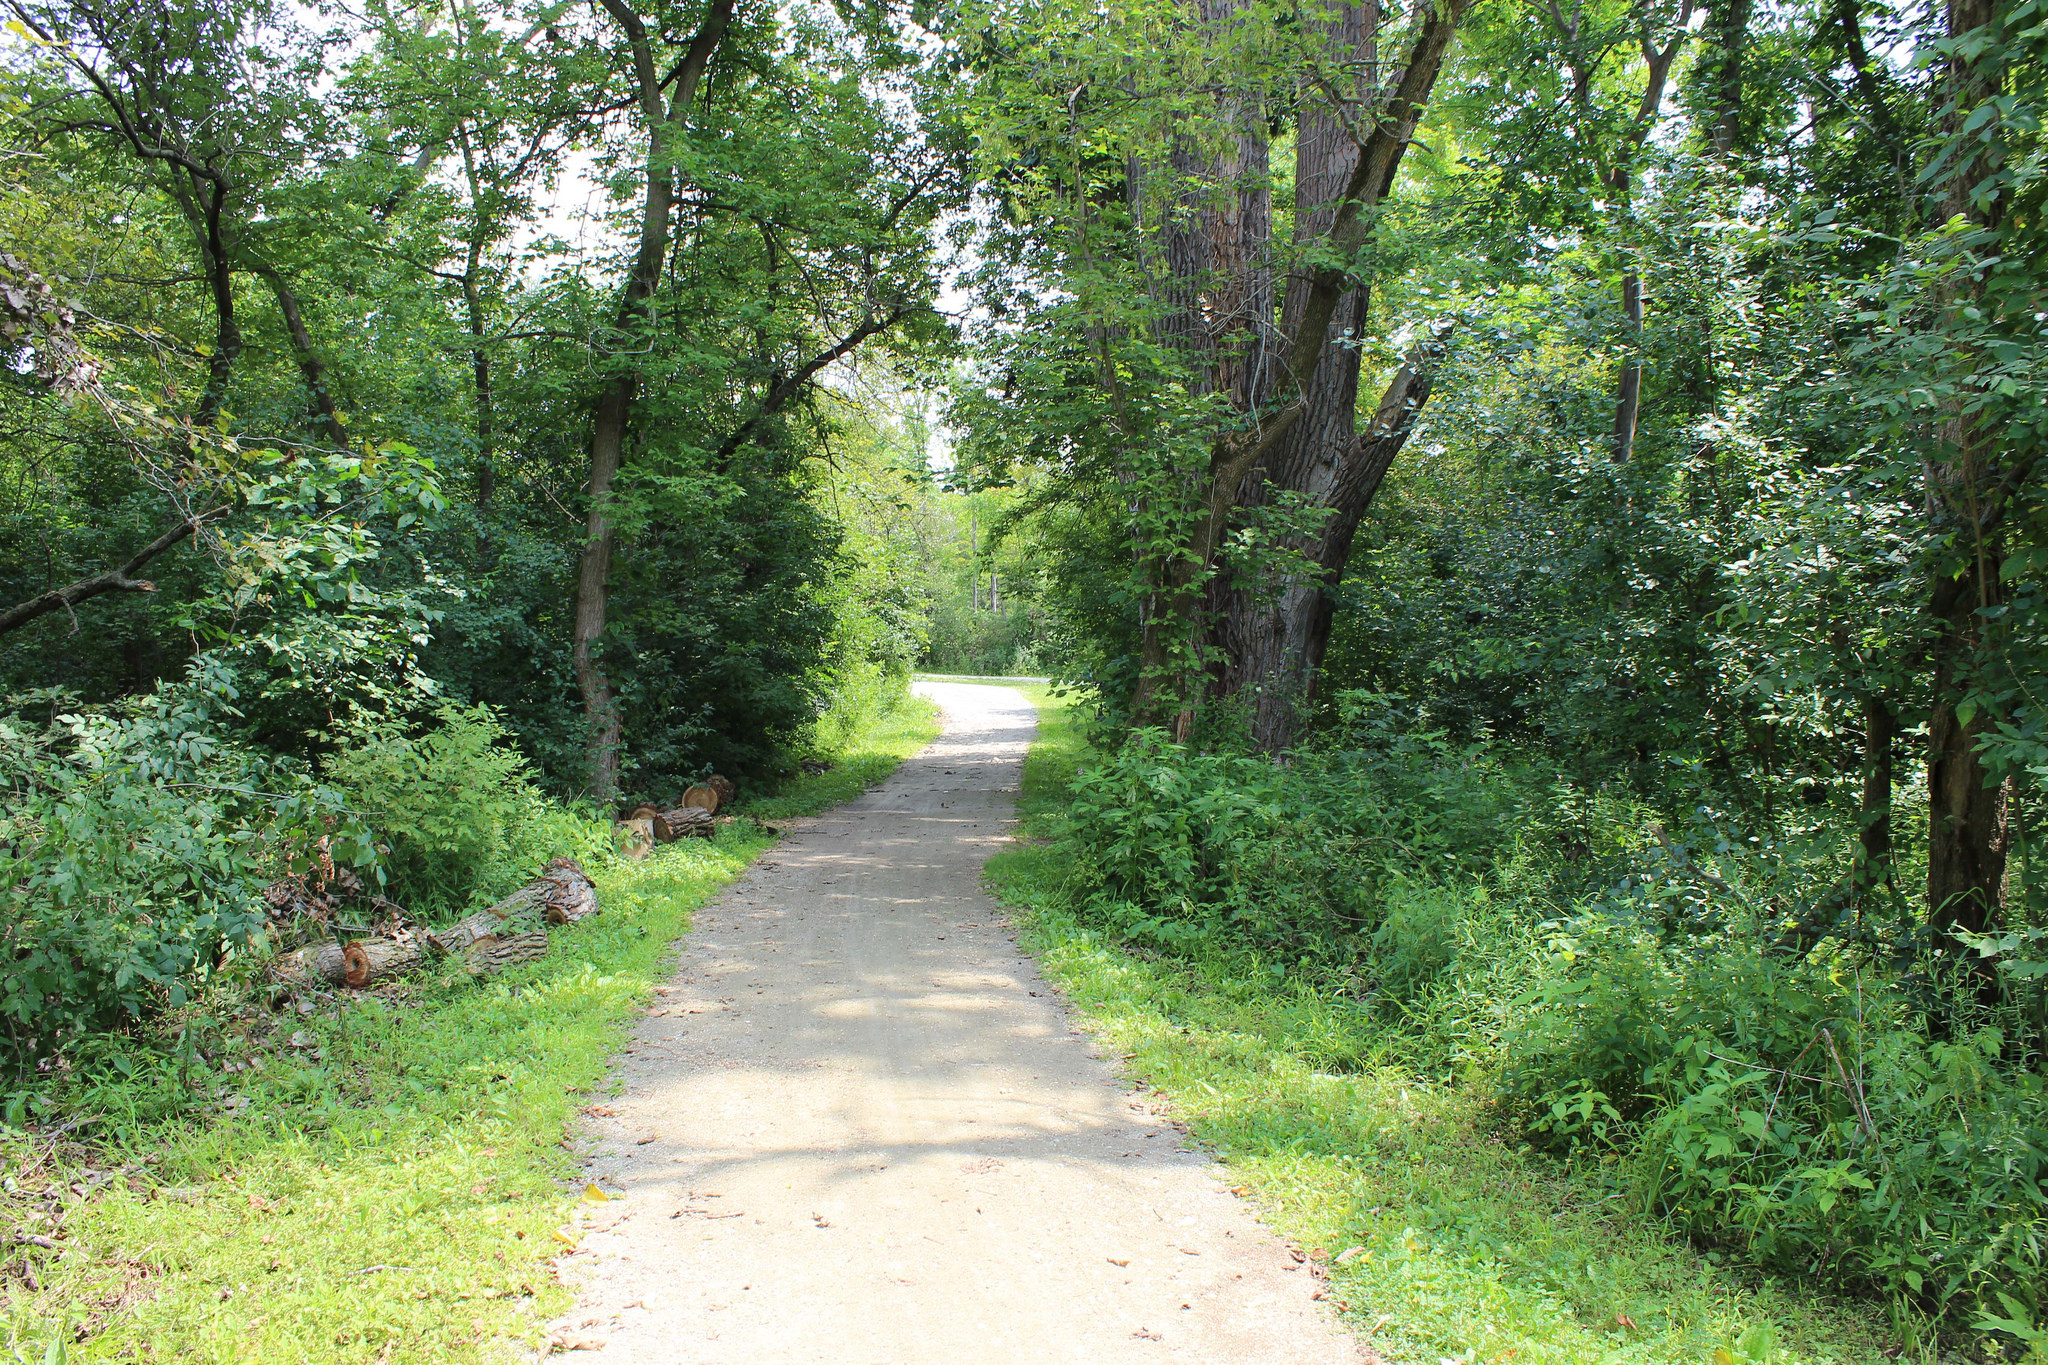 Canton Trail image 2